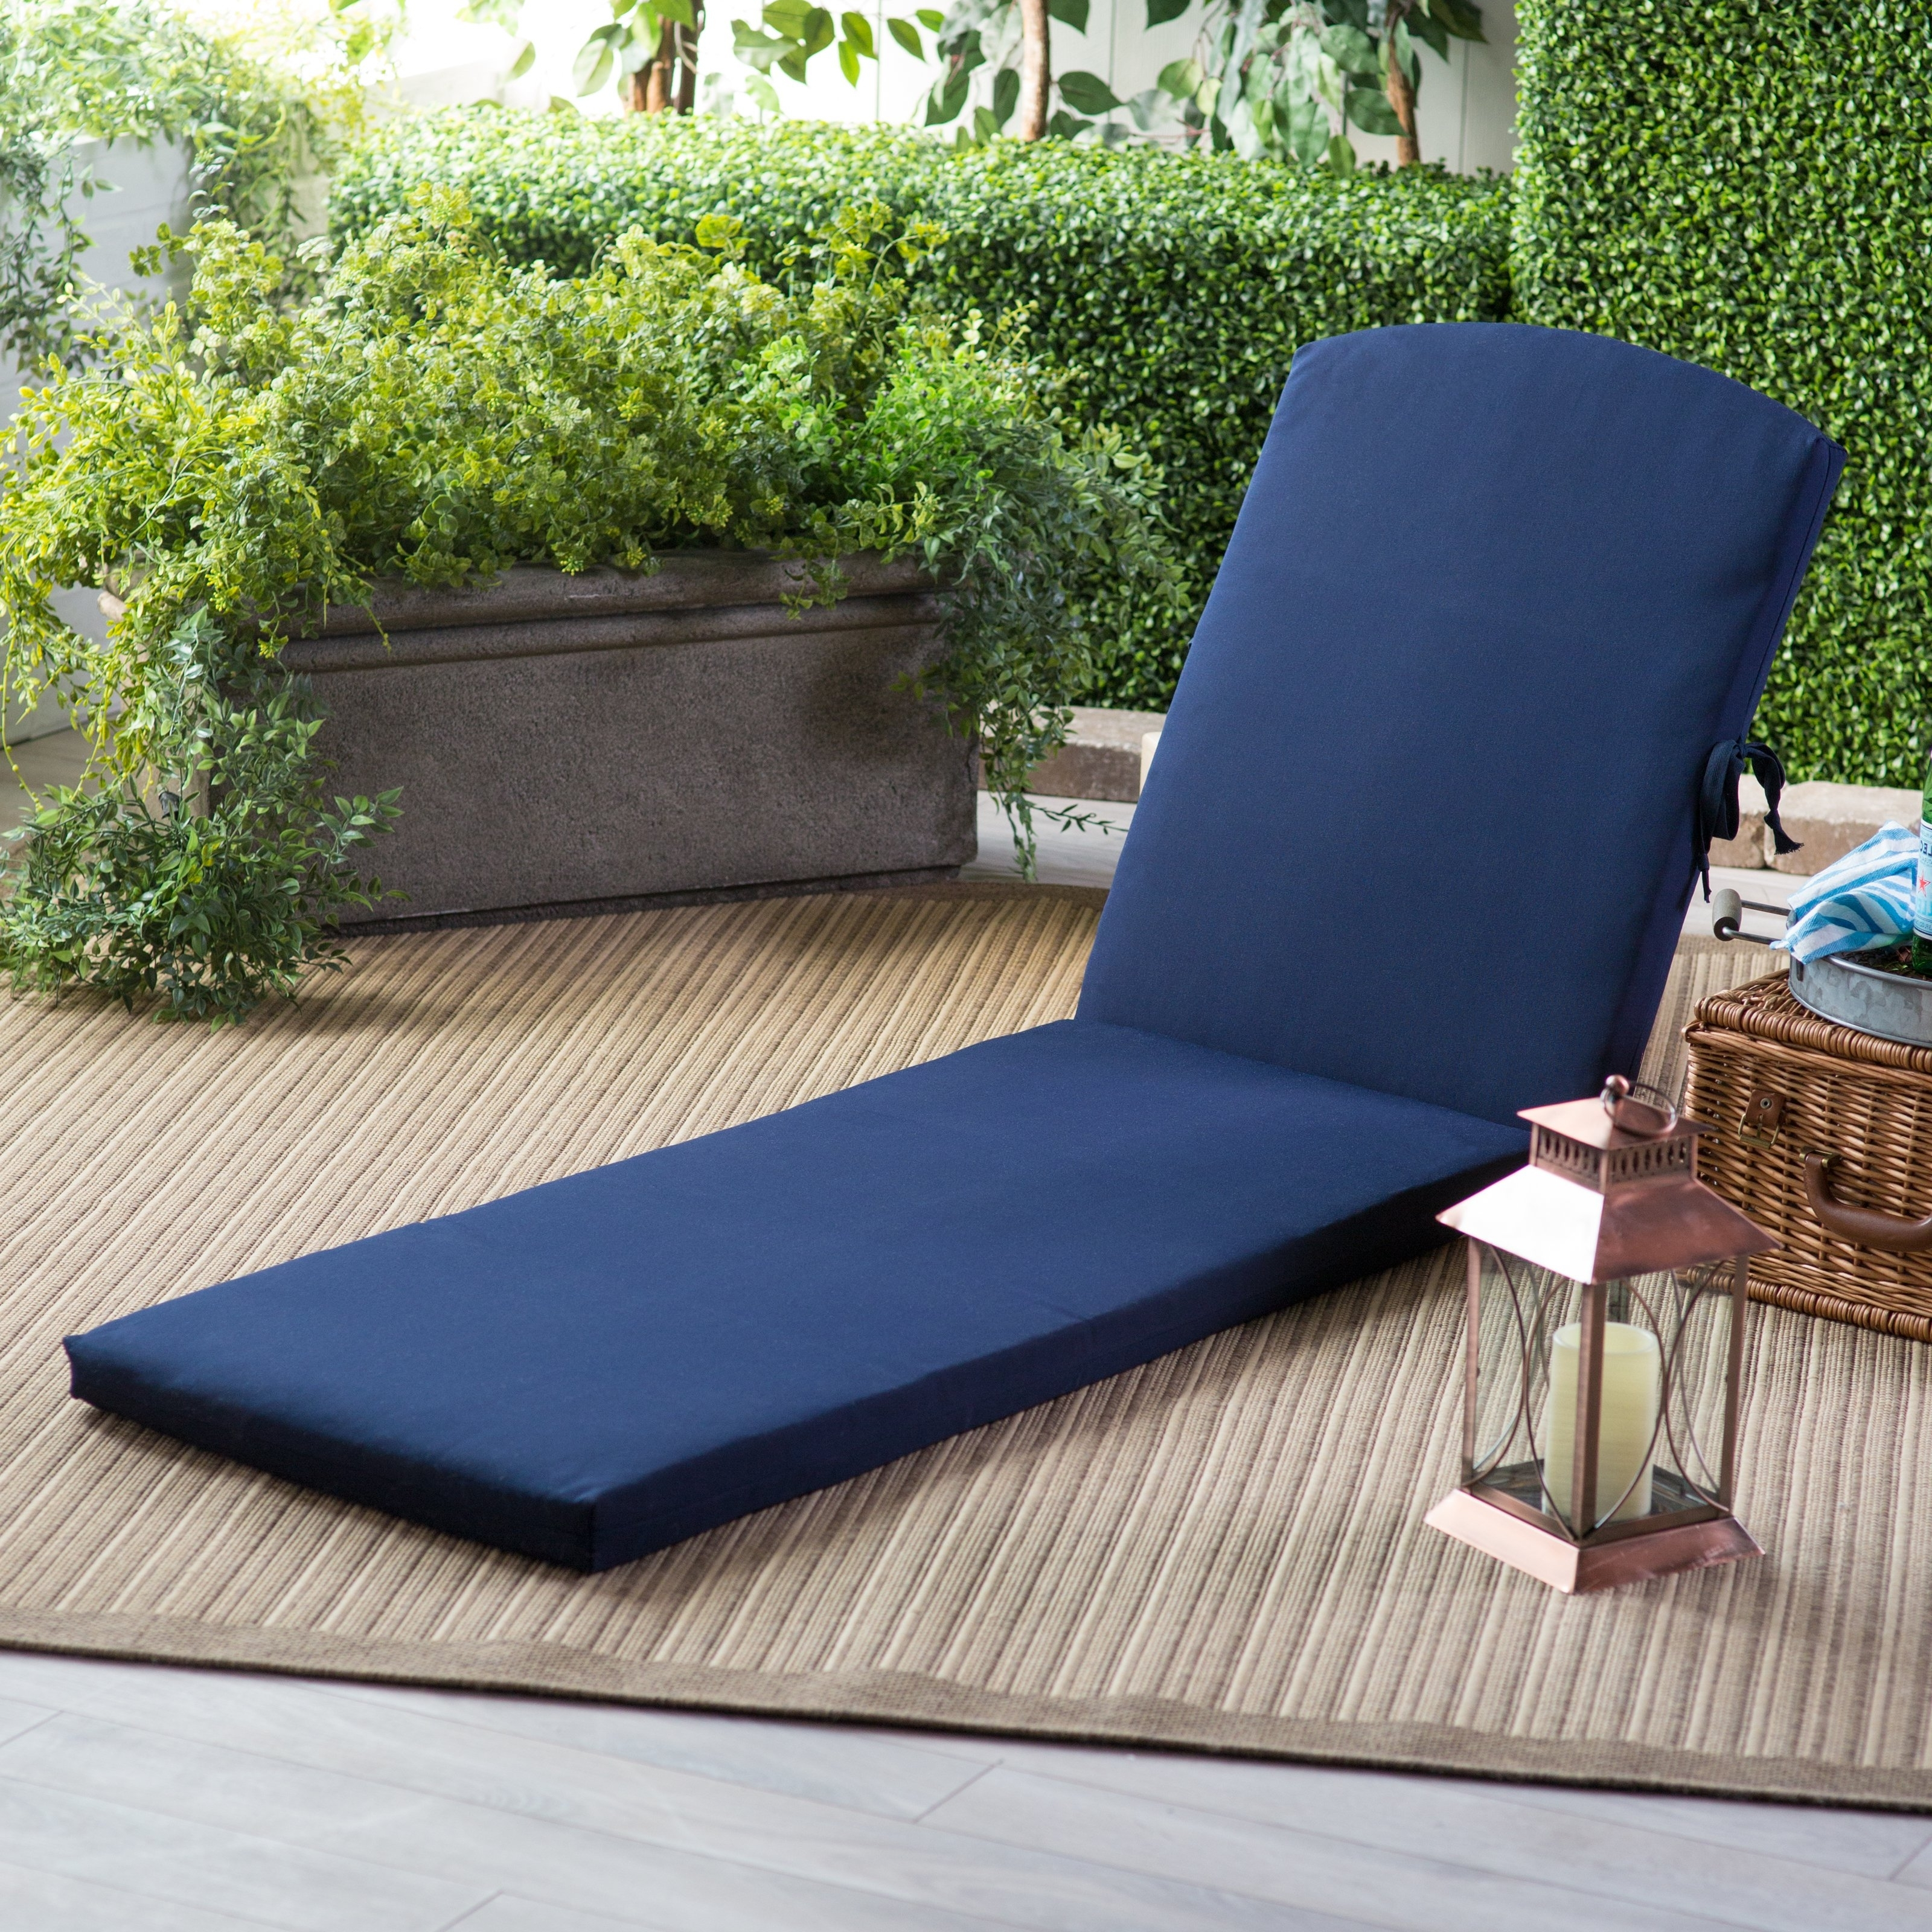 Hayneedle Pertaining To Chaise Lounge Chair Outdoor Cushions (View 2 of 15)